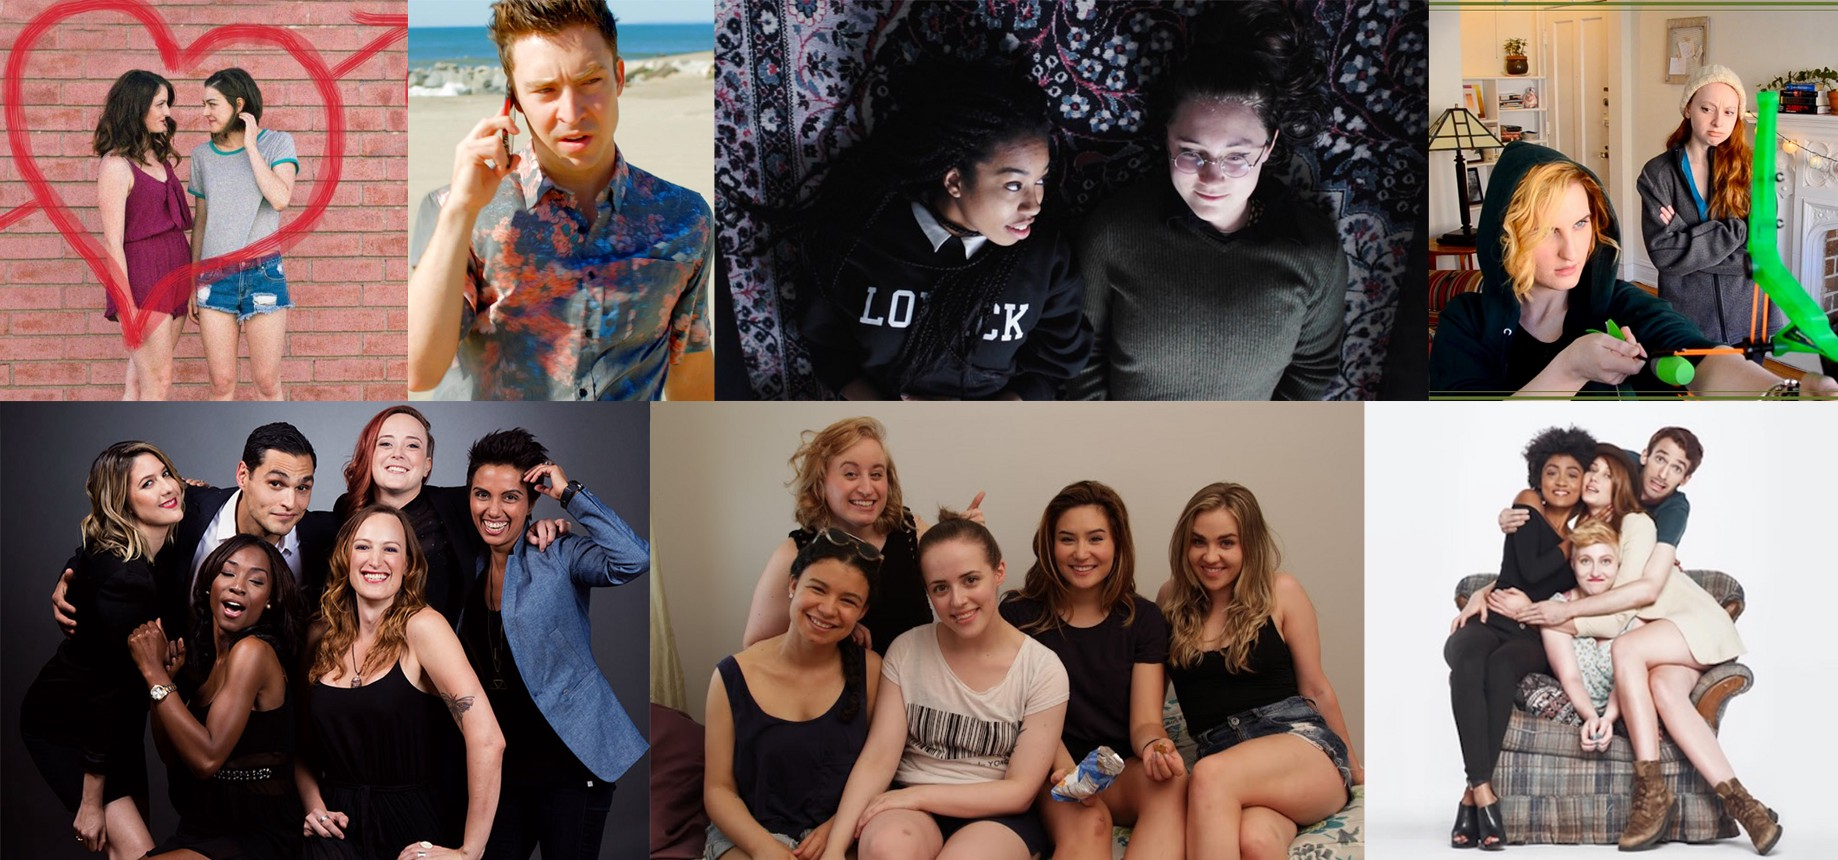 The 7 Best Free LGBT+ Web Series (According To The Internet)